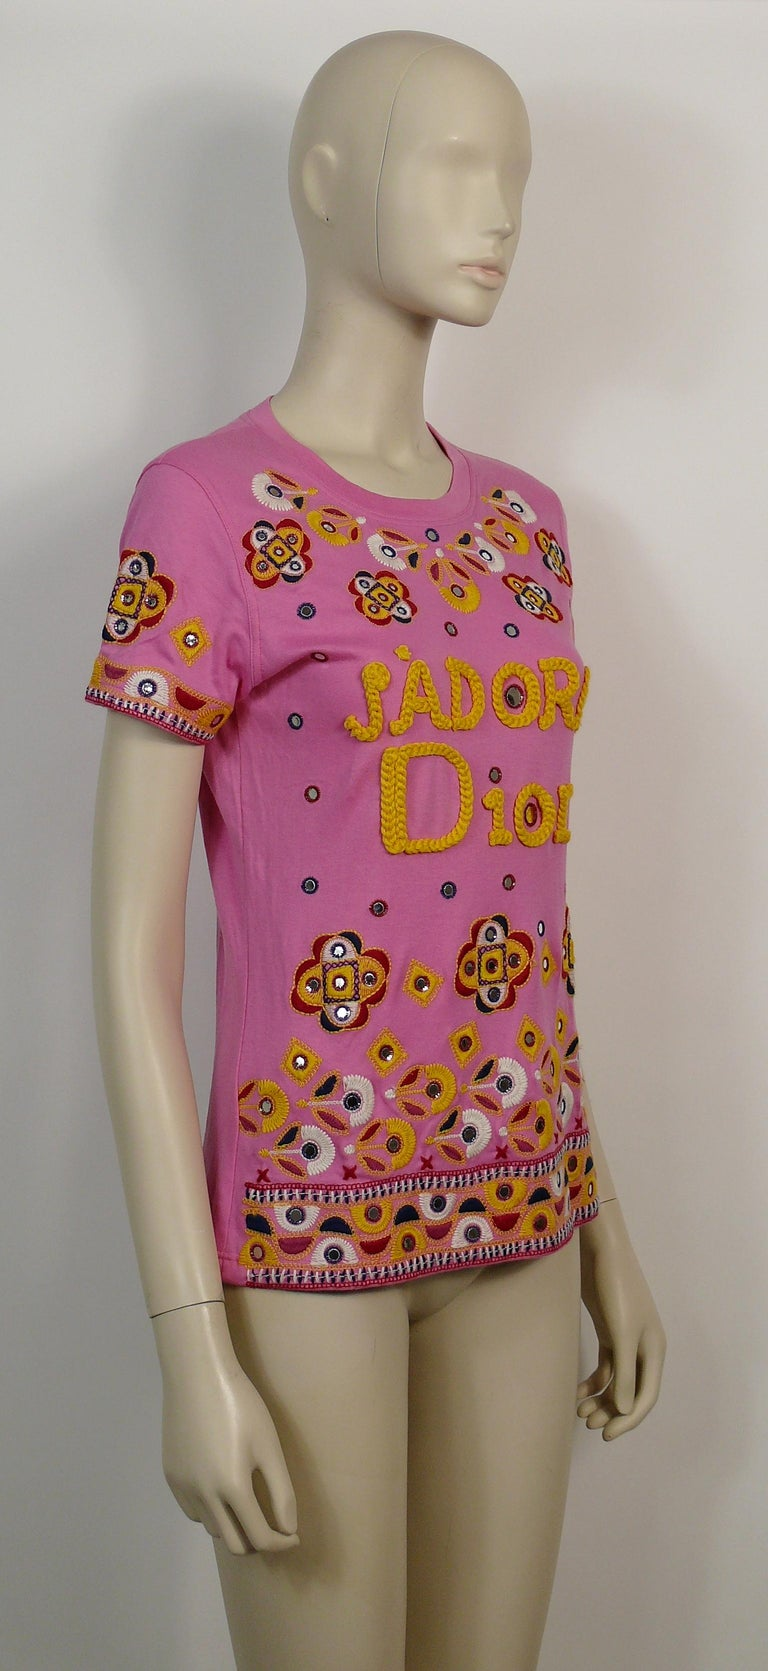 CHRISTIAN DIOR pink J'ADORE DIOR t-shirt featuring embroideries and faux mirrors.  Label reads CHRISTIAN DIOR BOUTIQUE Paris. Made in Italy.  Size tag reads : F 38 / GB 10 / D 36 / USA 6. Please refer to measurements.   Composition tag reads : 100%